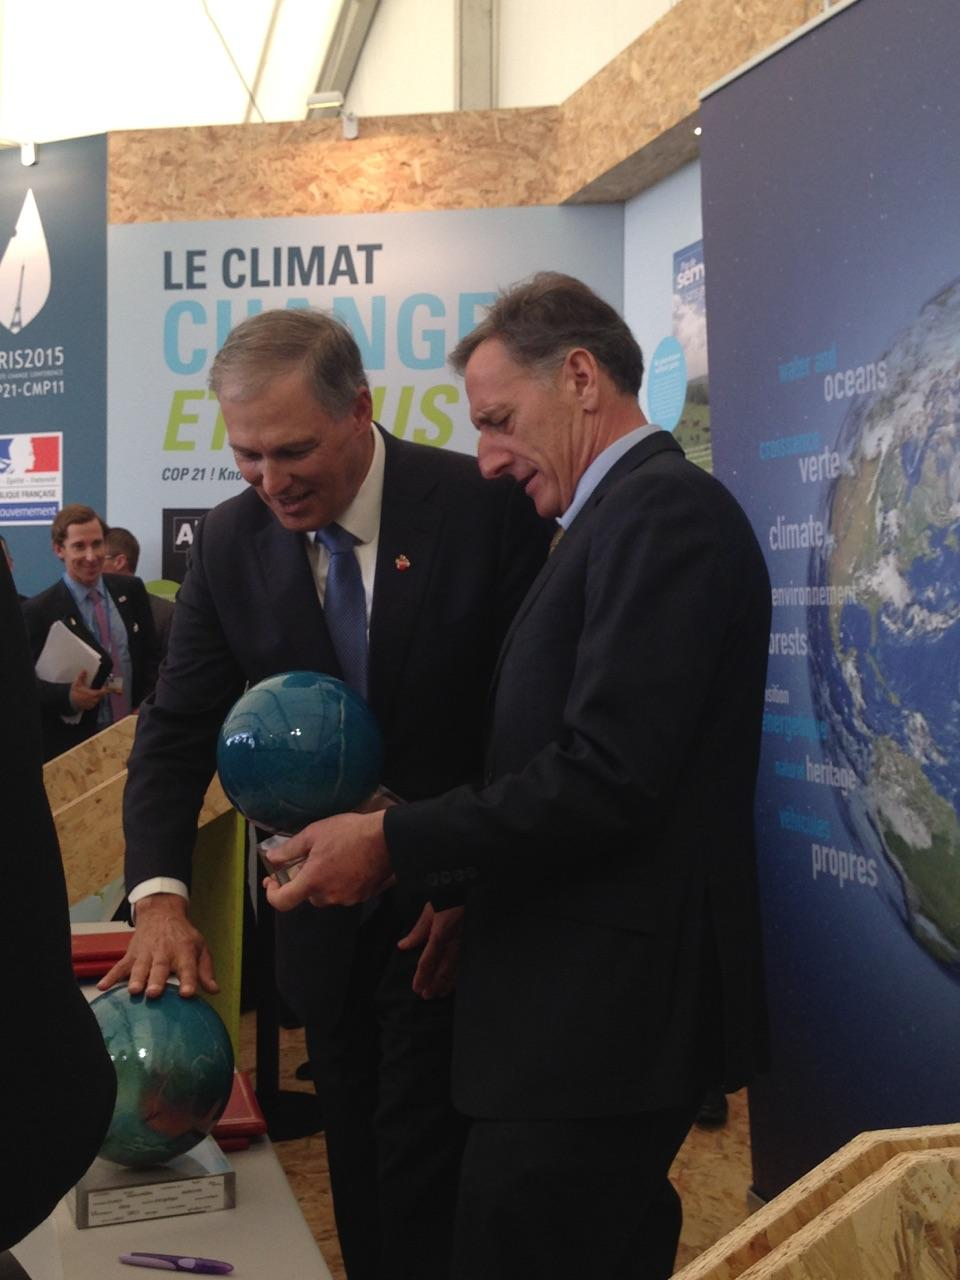 Vermont Gov. Peter Shumlin with Washington Gov. Jay Inslee at the international climate change conference in Paris